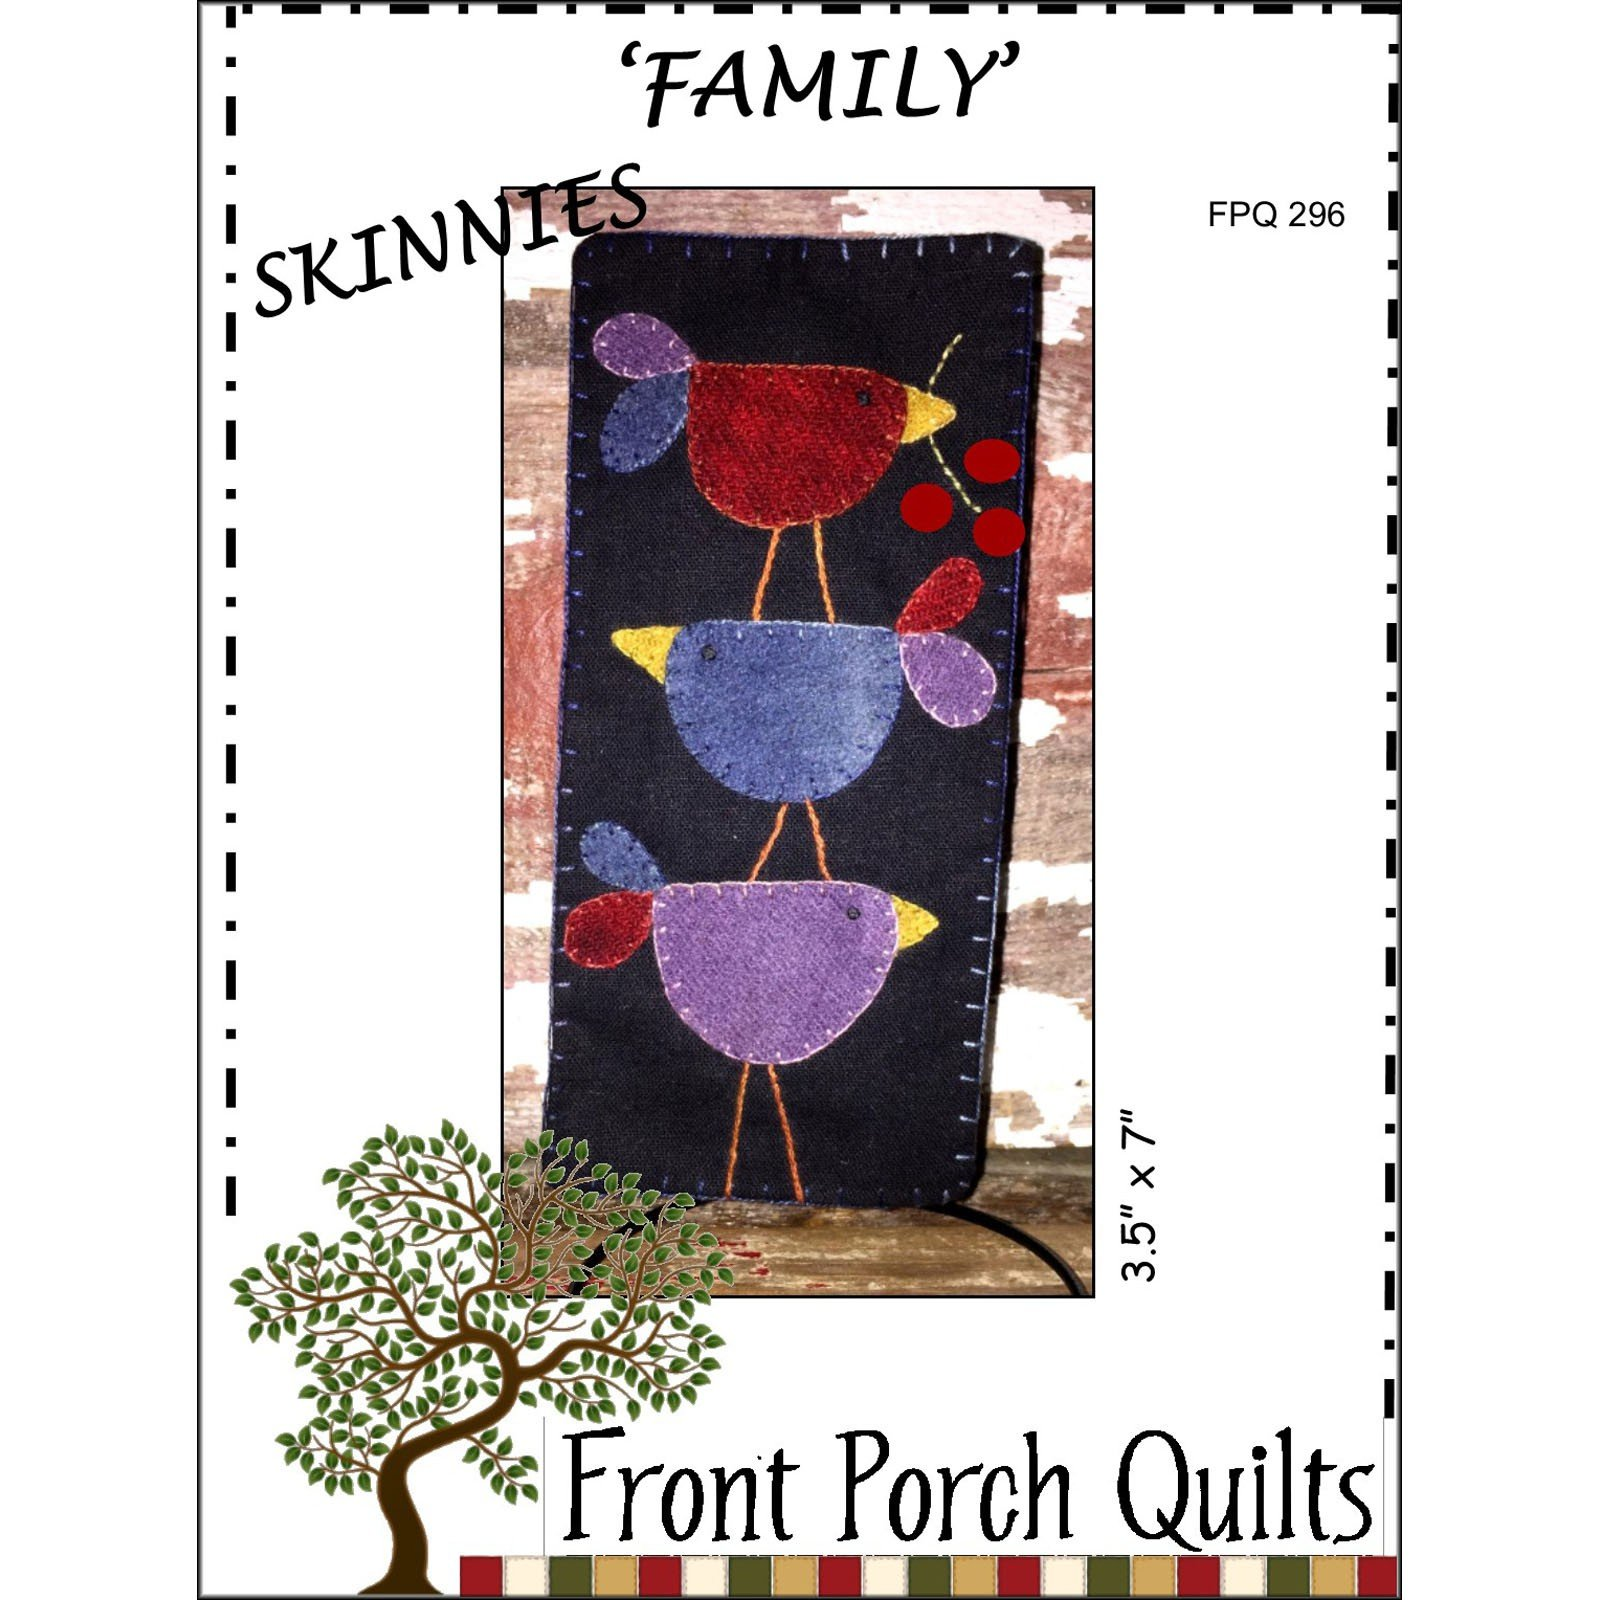 Family Skinney Kit - Wool